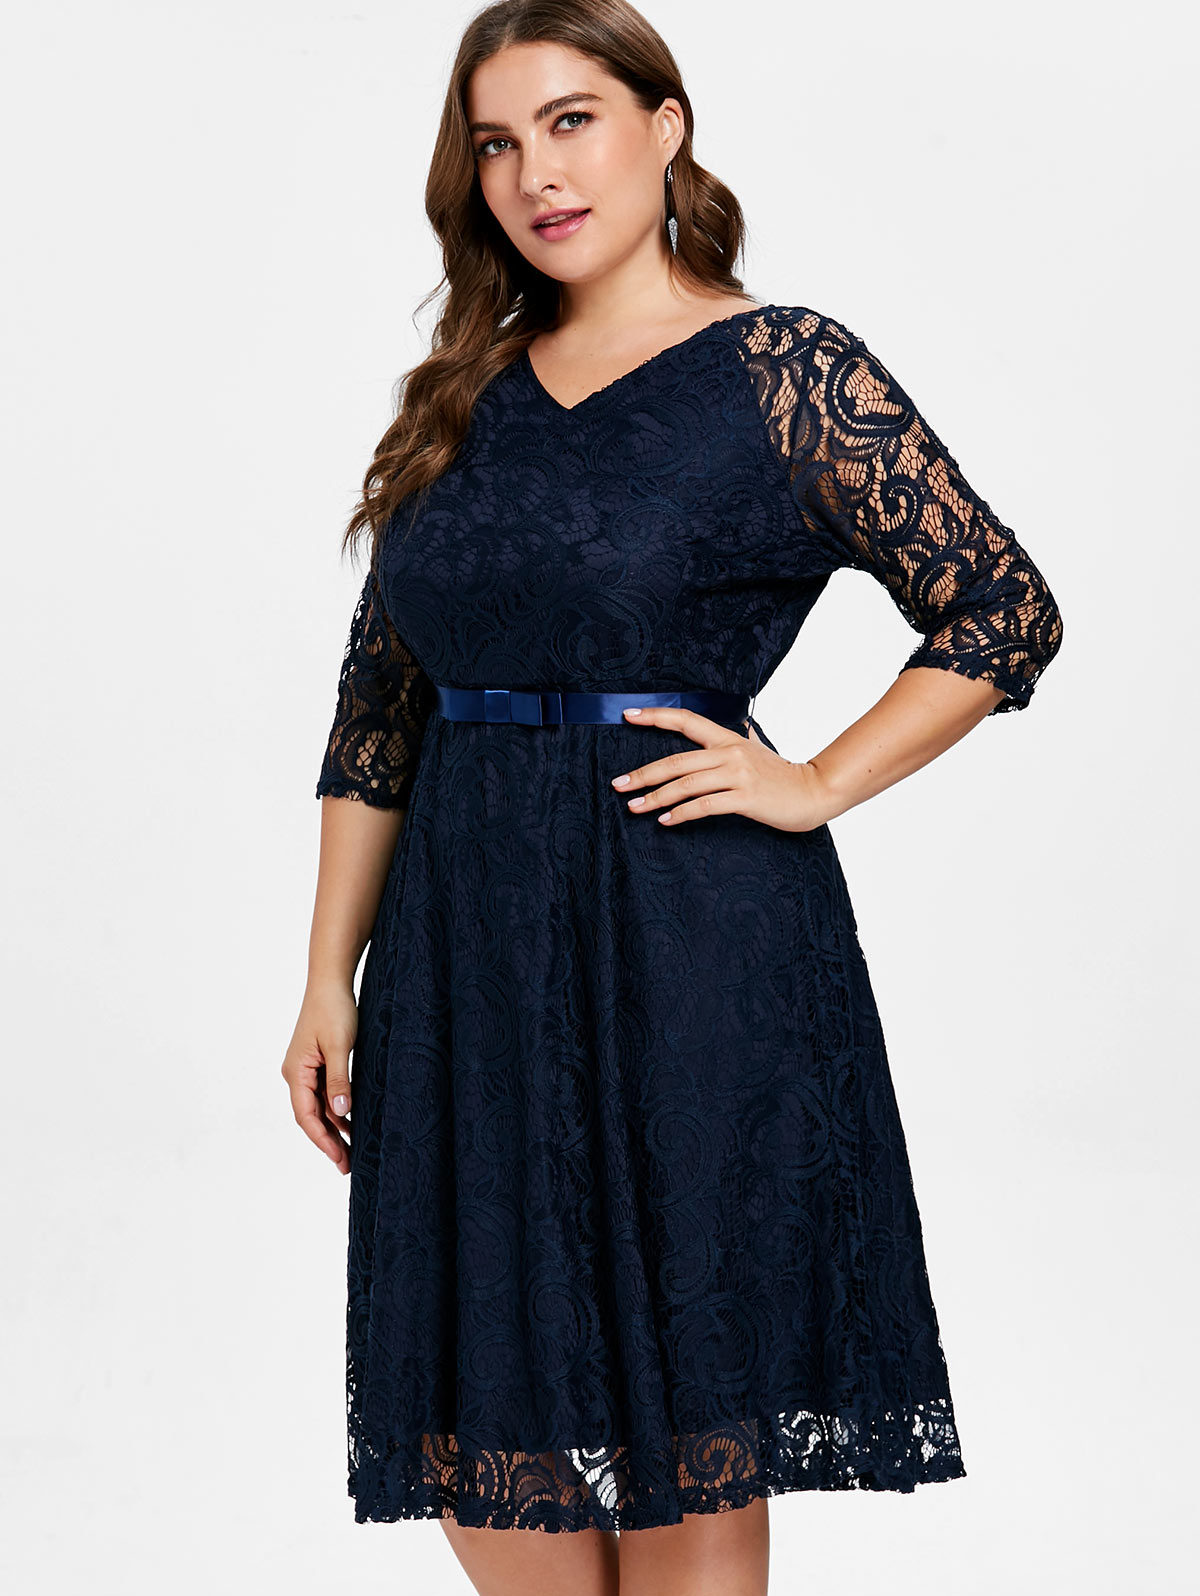 861d31e2382 ... Wipalo Women Tied Belted Plus Size Lace Knee Length Dress Solid V Neck Three  Quarter Sleeve A Line Party Dress 4XL Vestidos